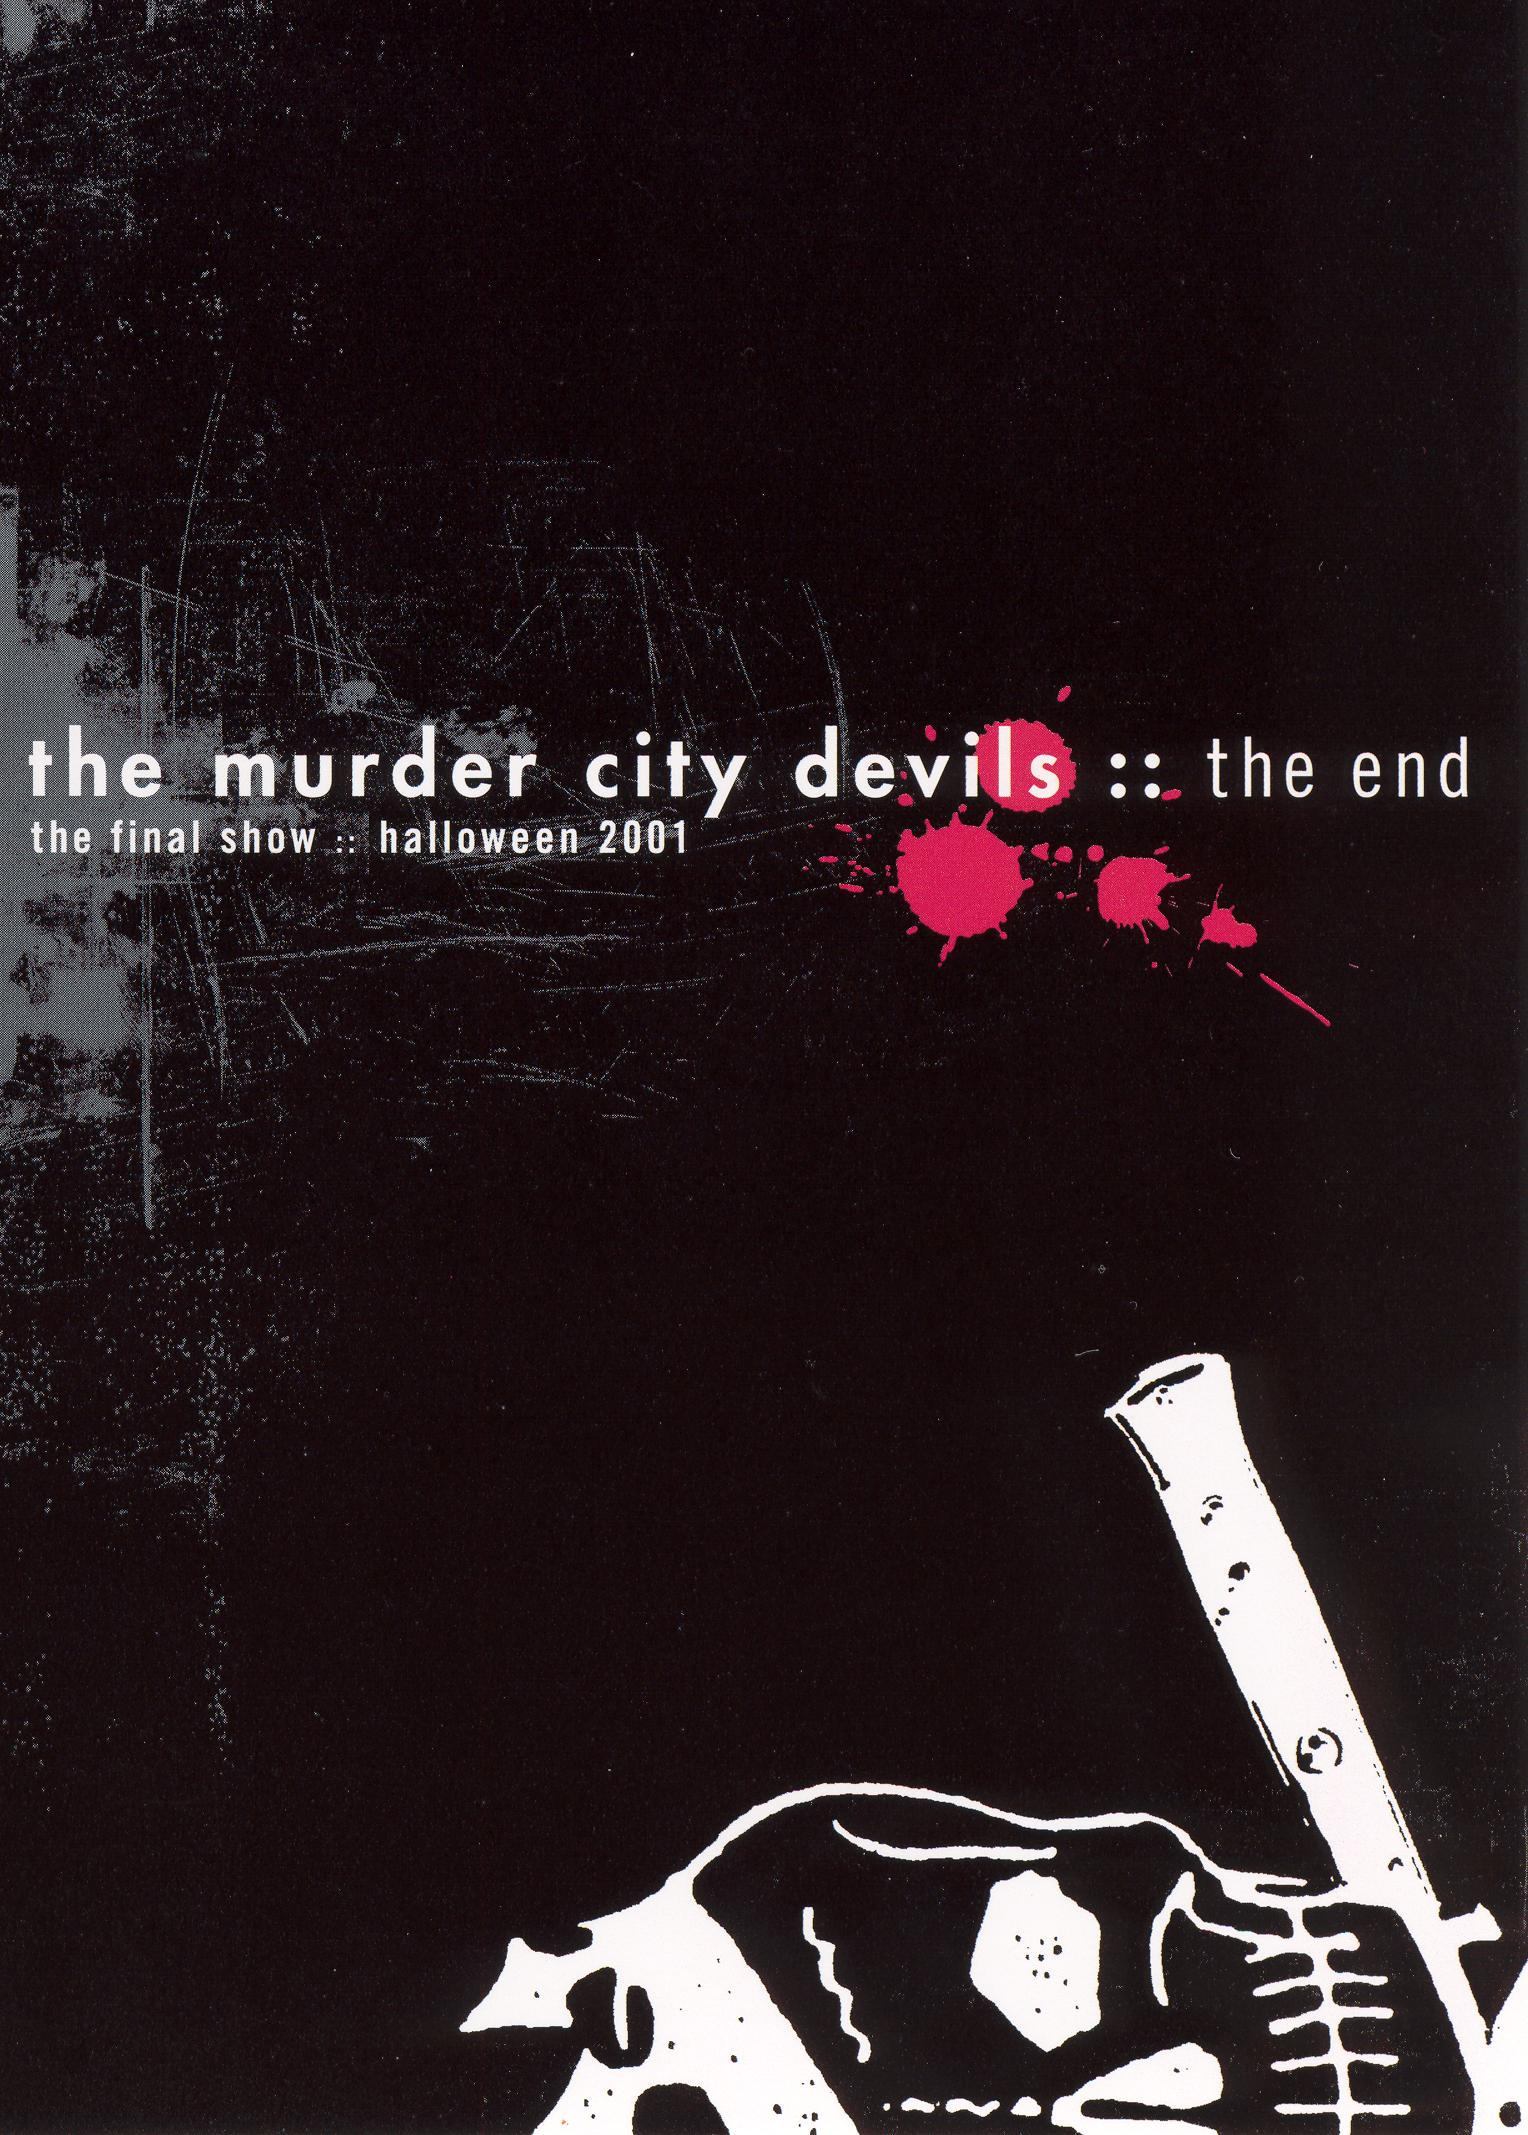 The Murder City Devils: The End - Final Show Halloween 2001